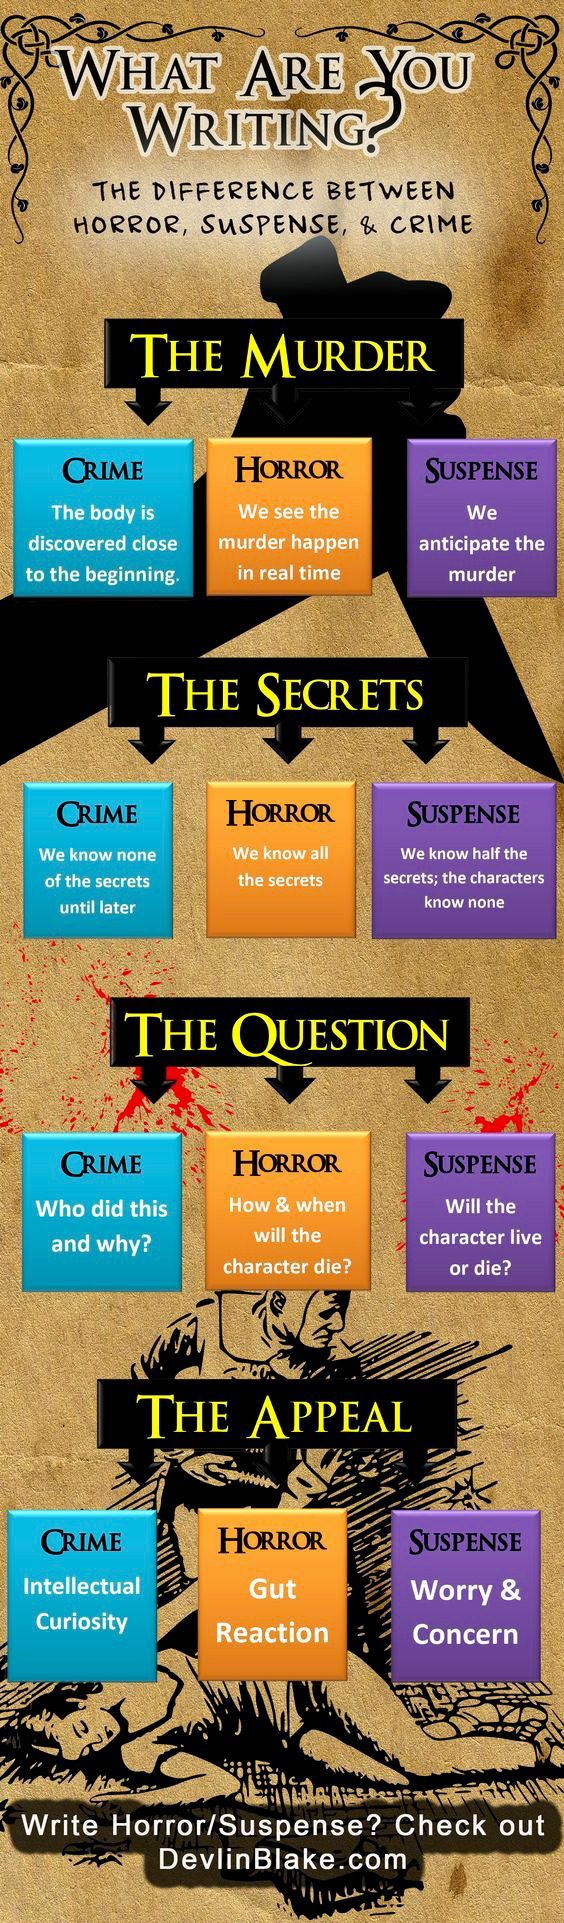 What are you writing: Crime, Horror, or Suspense?